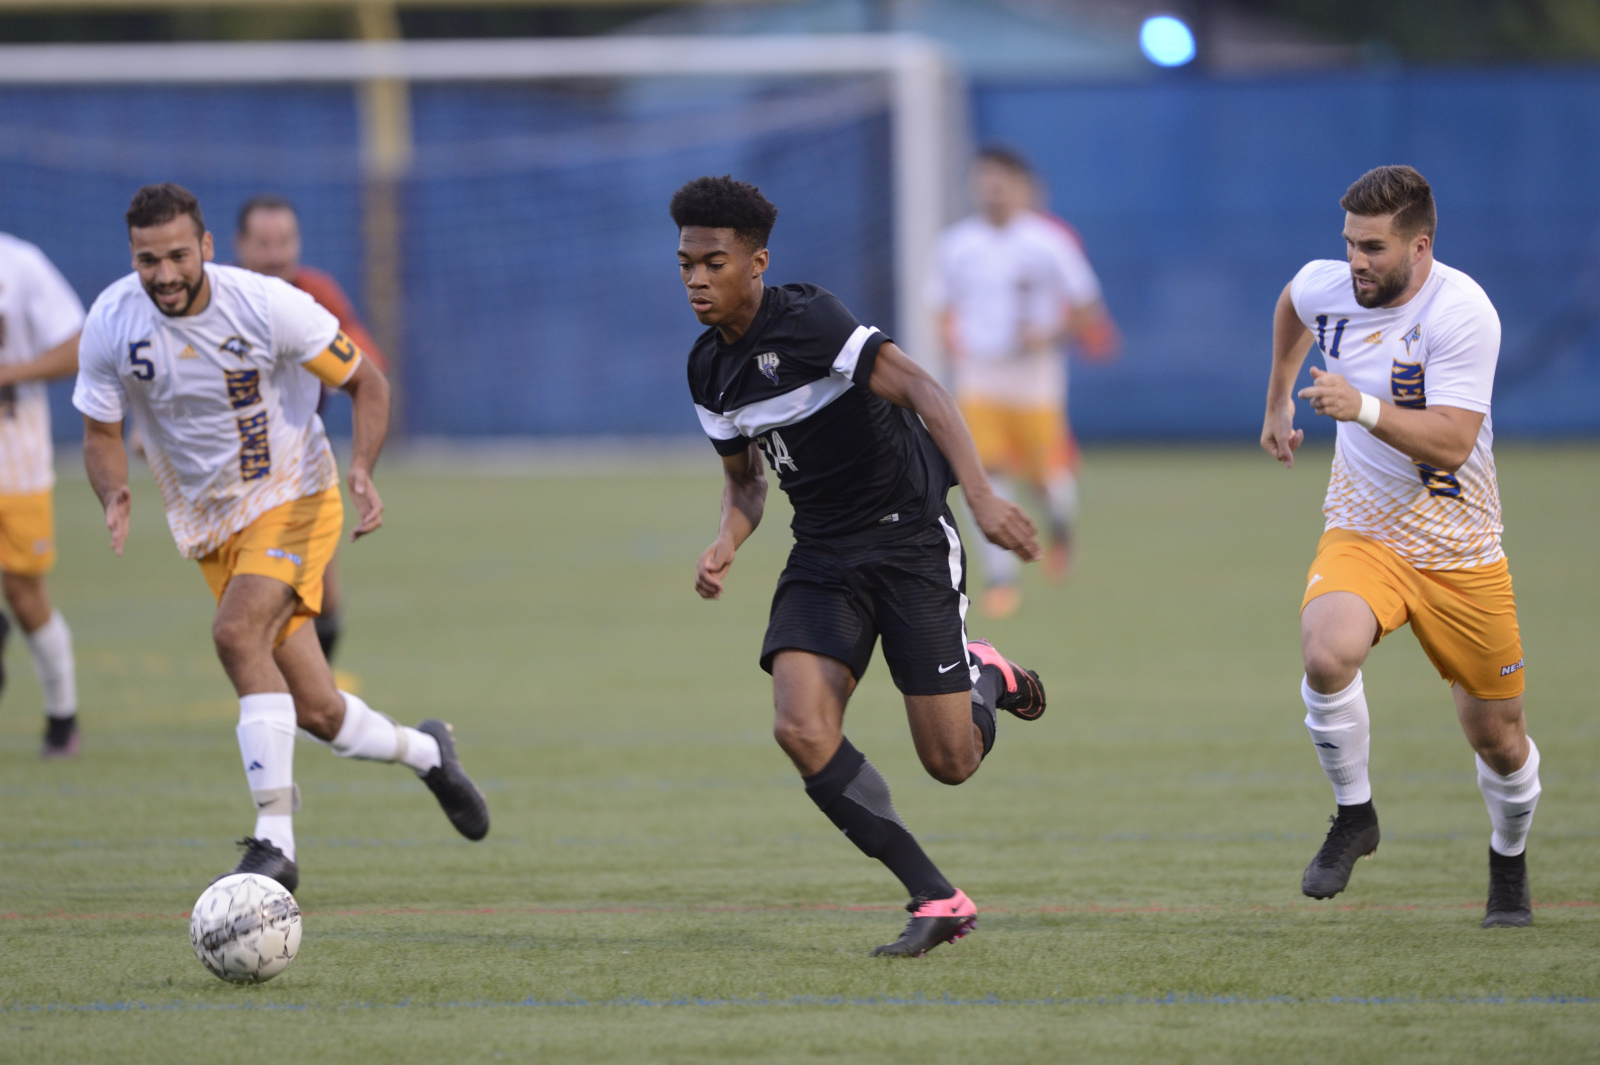 Men's Soccer Scores First But Fall In Overtime At East Stroudsburg, 2-1